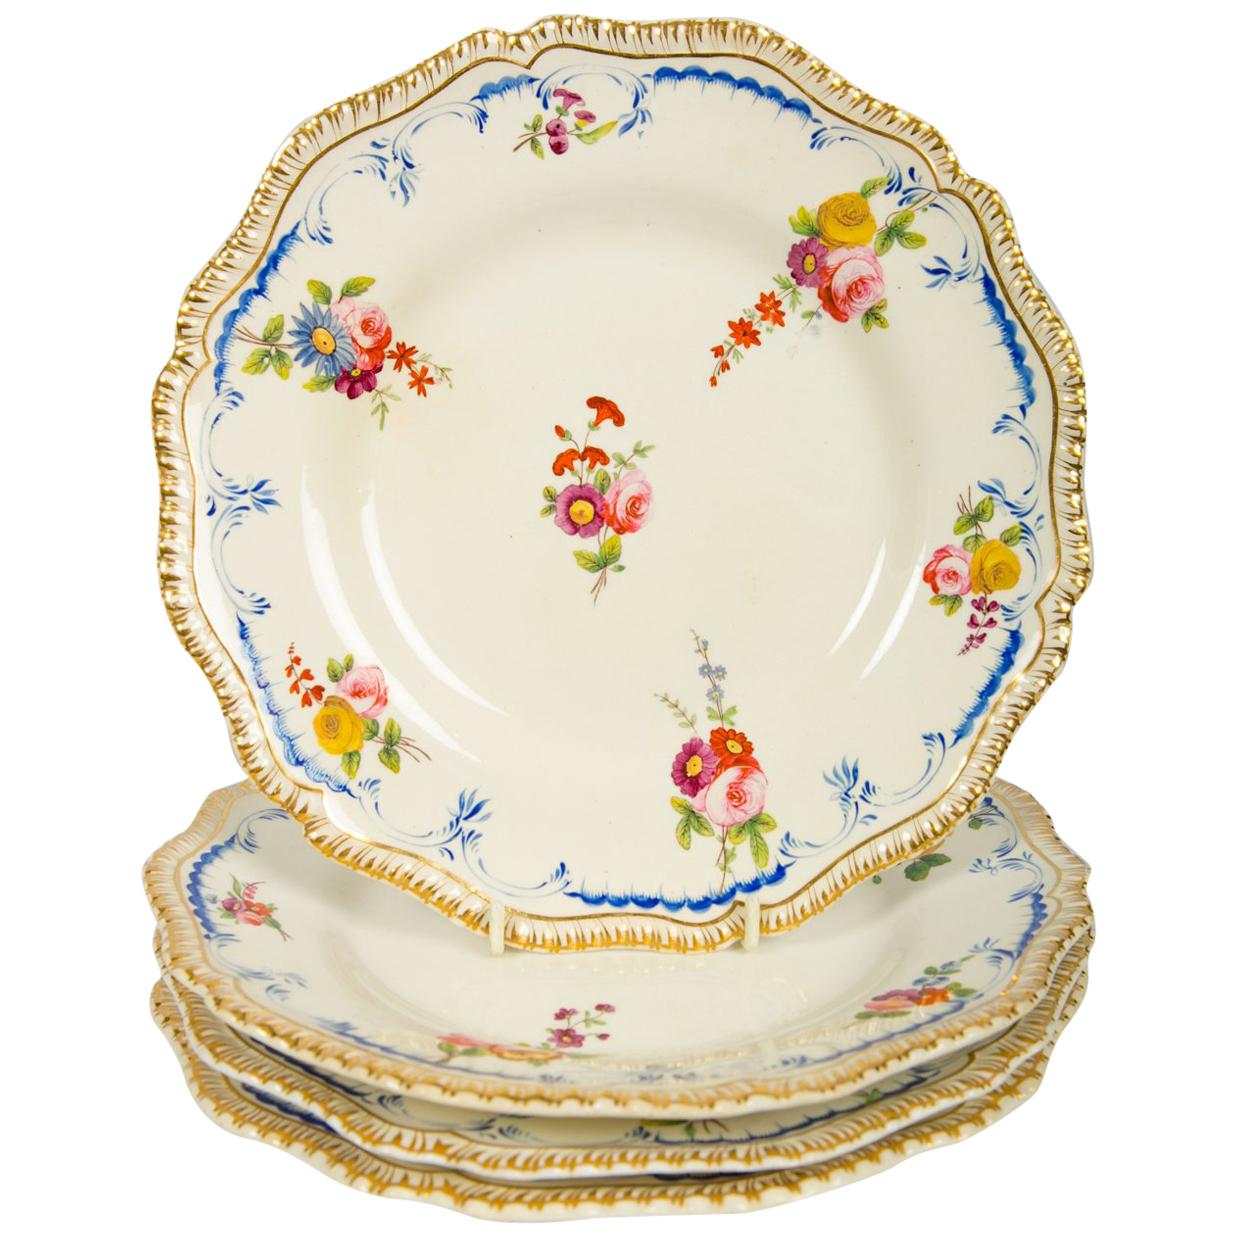 Set of Four Antique Dinner Plates Made by Coalport in the Early 19th Century